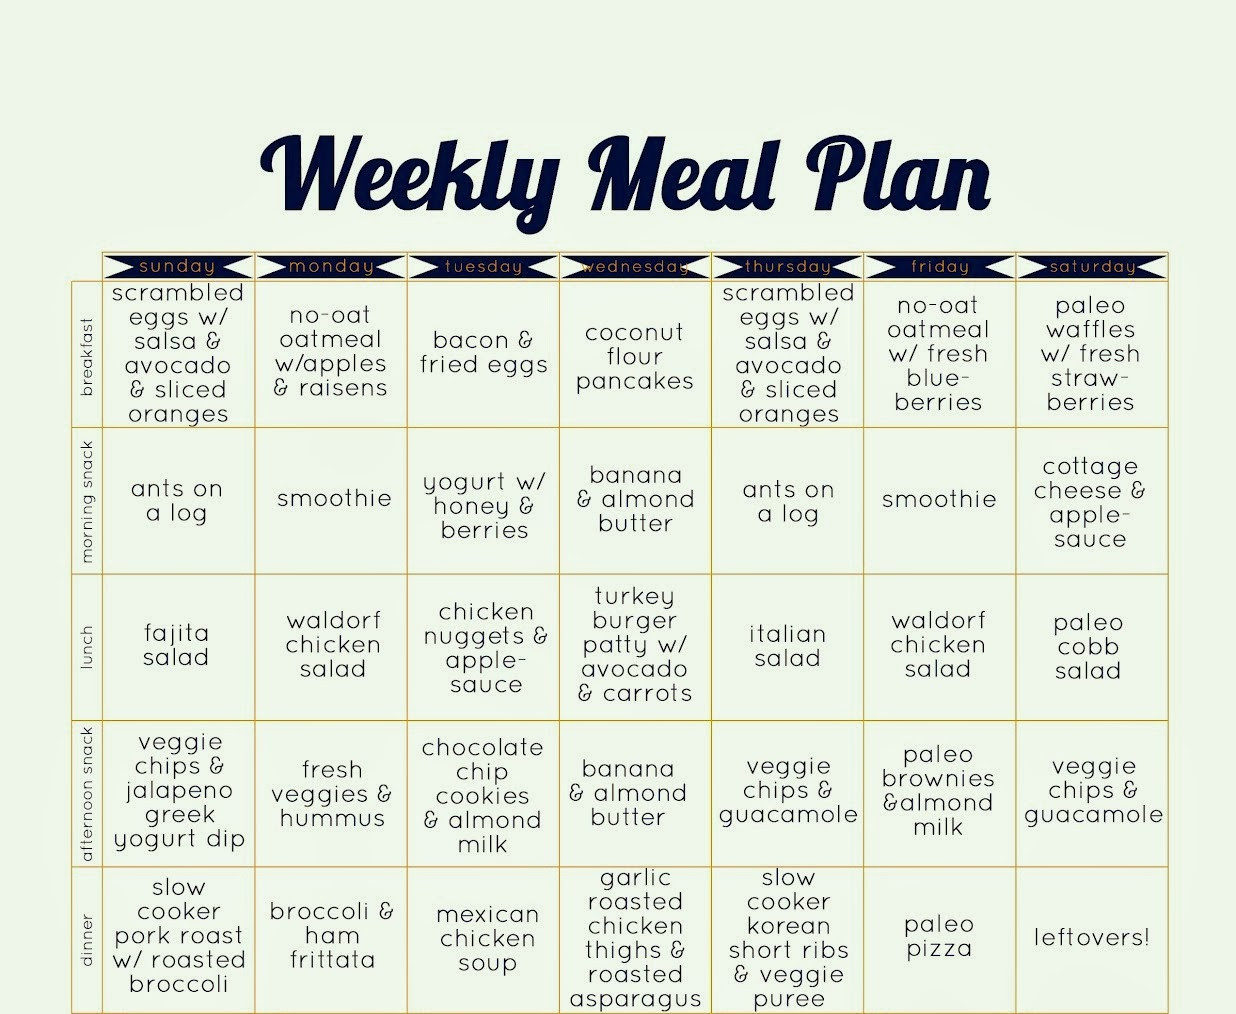 Paleo Diet Meal Plans  February 2014 The Paleo Diet Blog